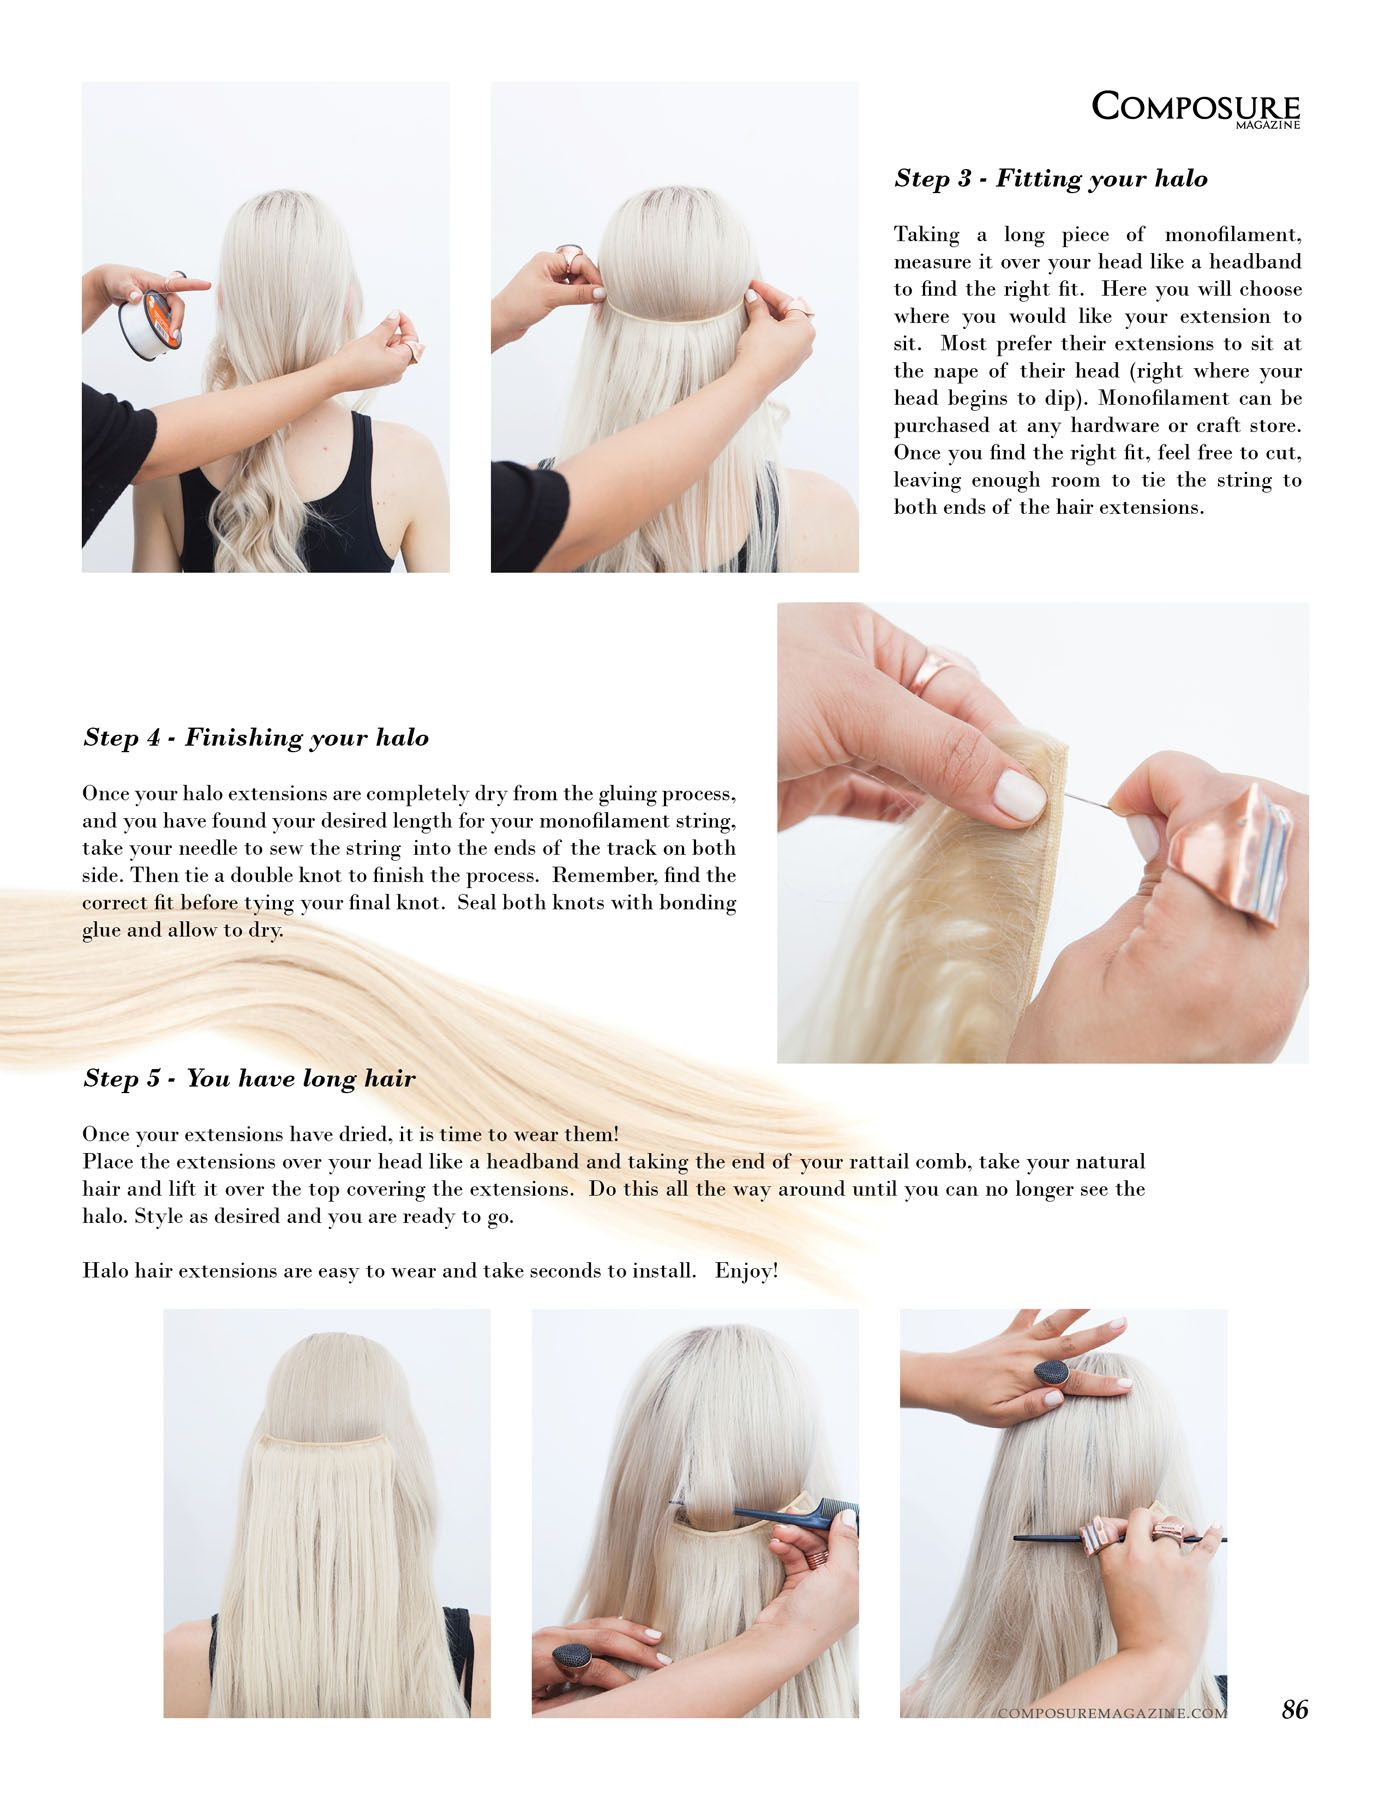 How to guide for halo hair extensions hair pinterest halo how to guide for halo hair extensions pmusecretfo Image collections